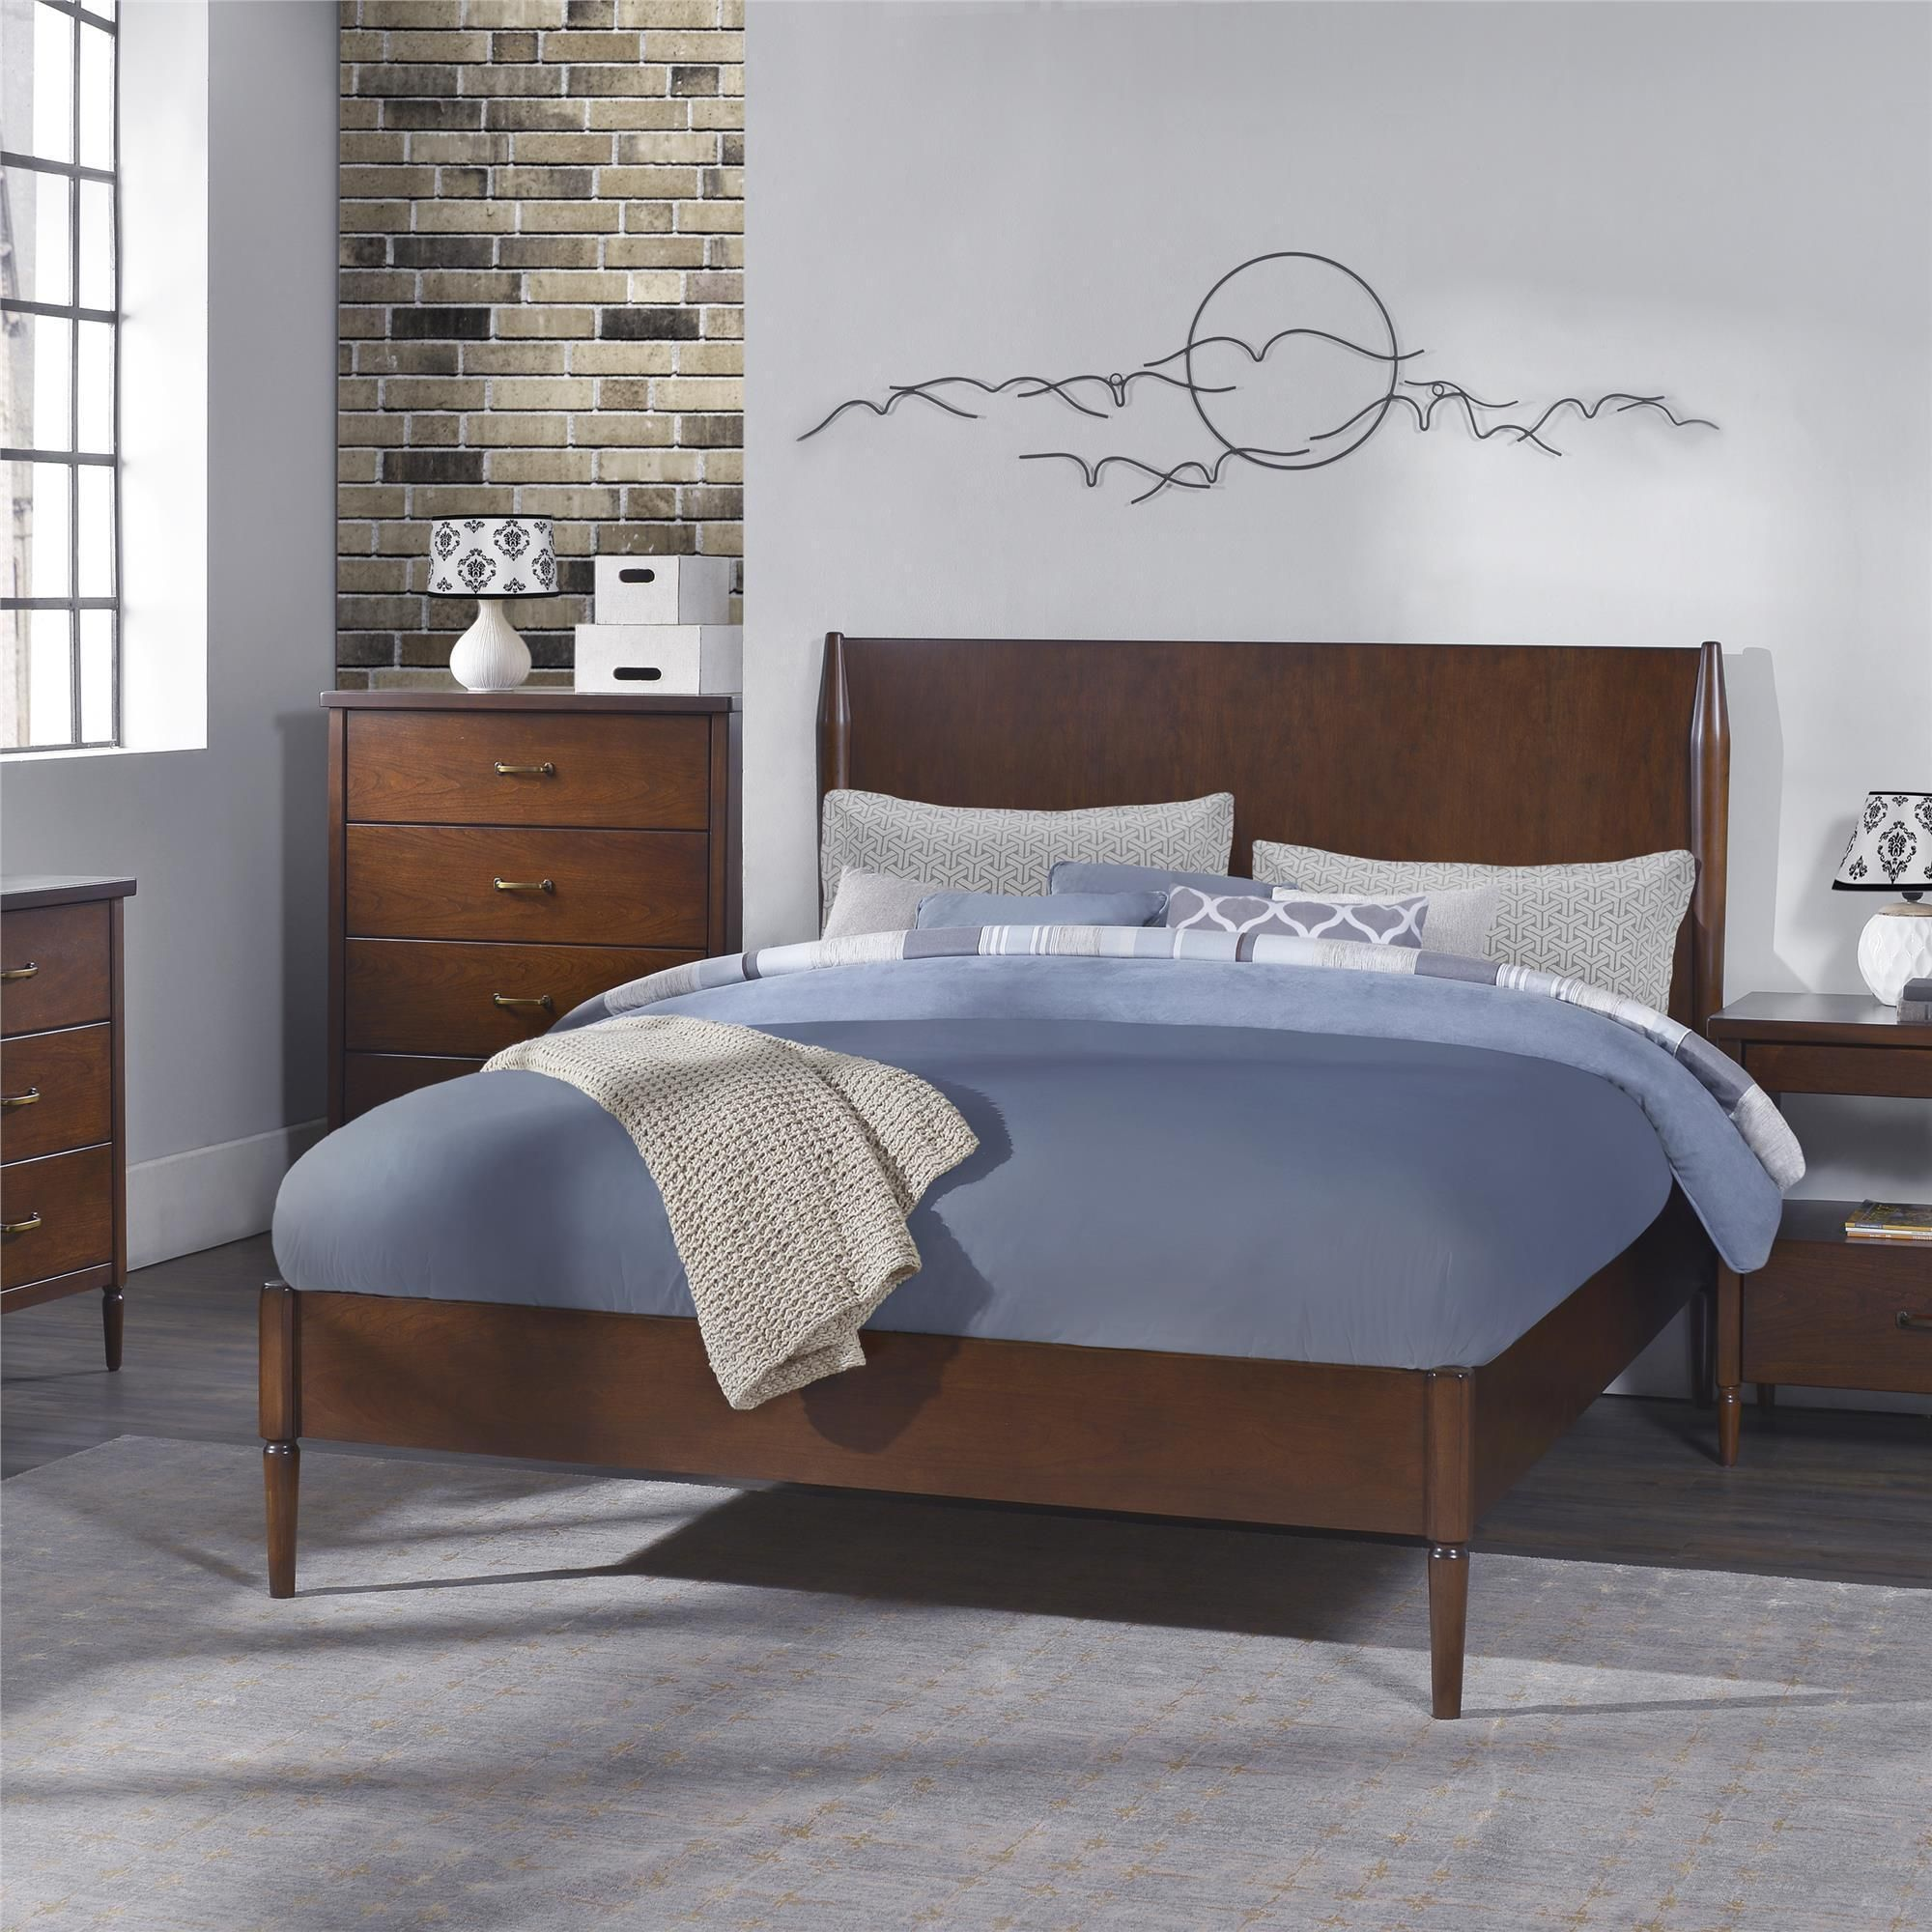 dorel living brook lane walnut queen bed queen beds queen size